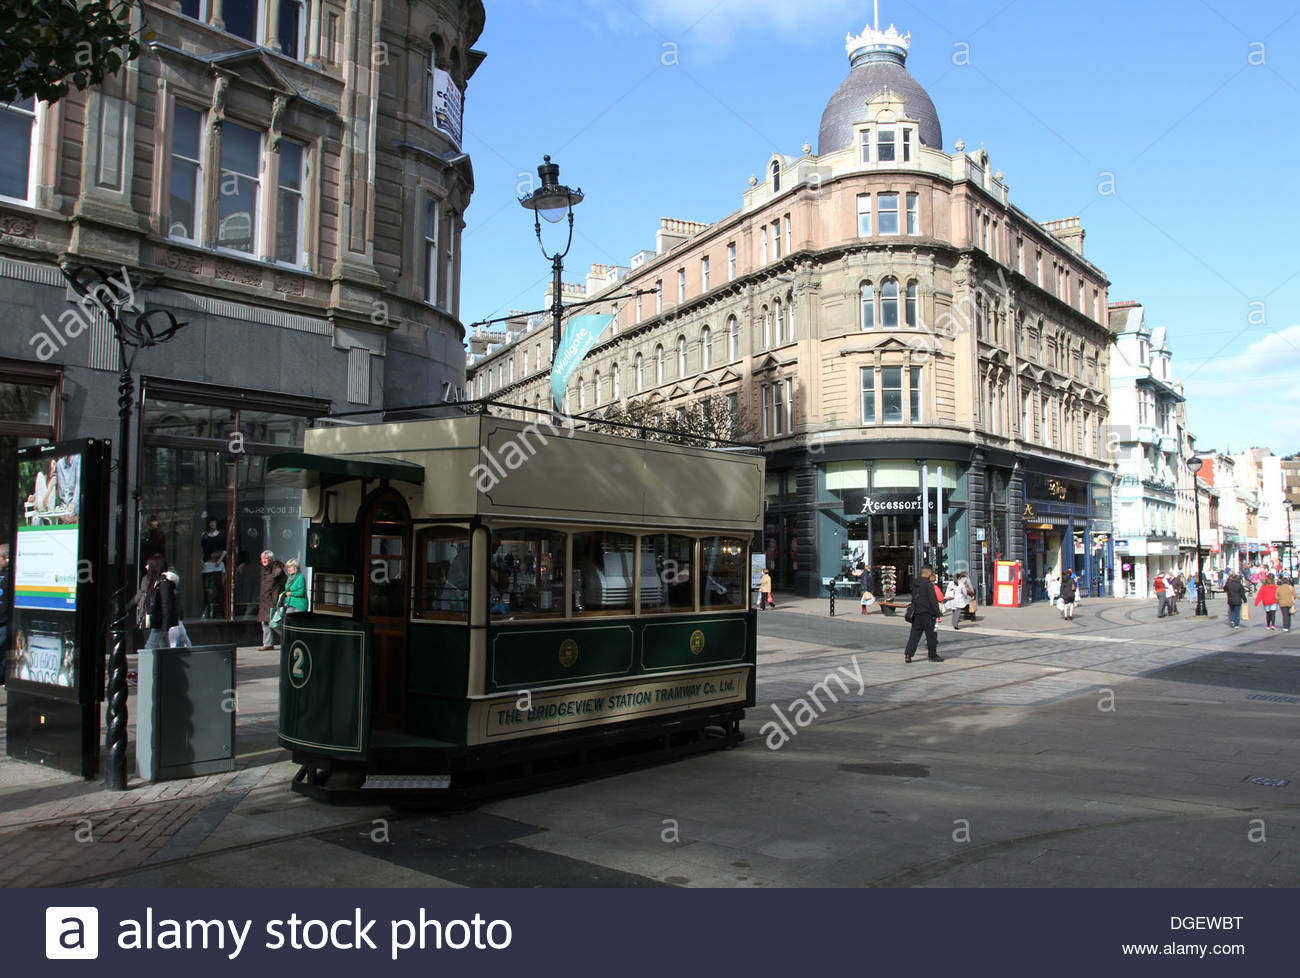 Auld Tram Coffee Shop in renovated horse drawn tram Dundee Scotland October 2013 - Stock Image